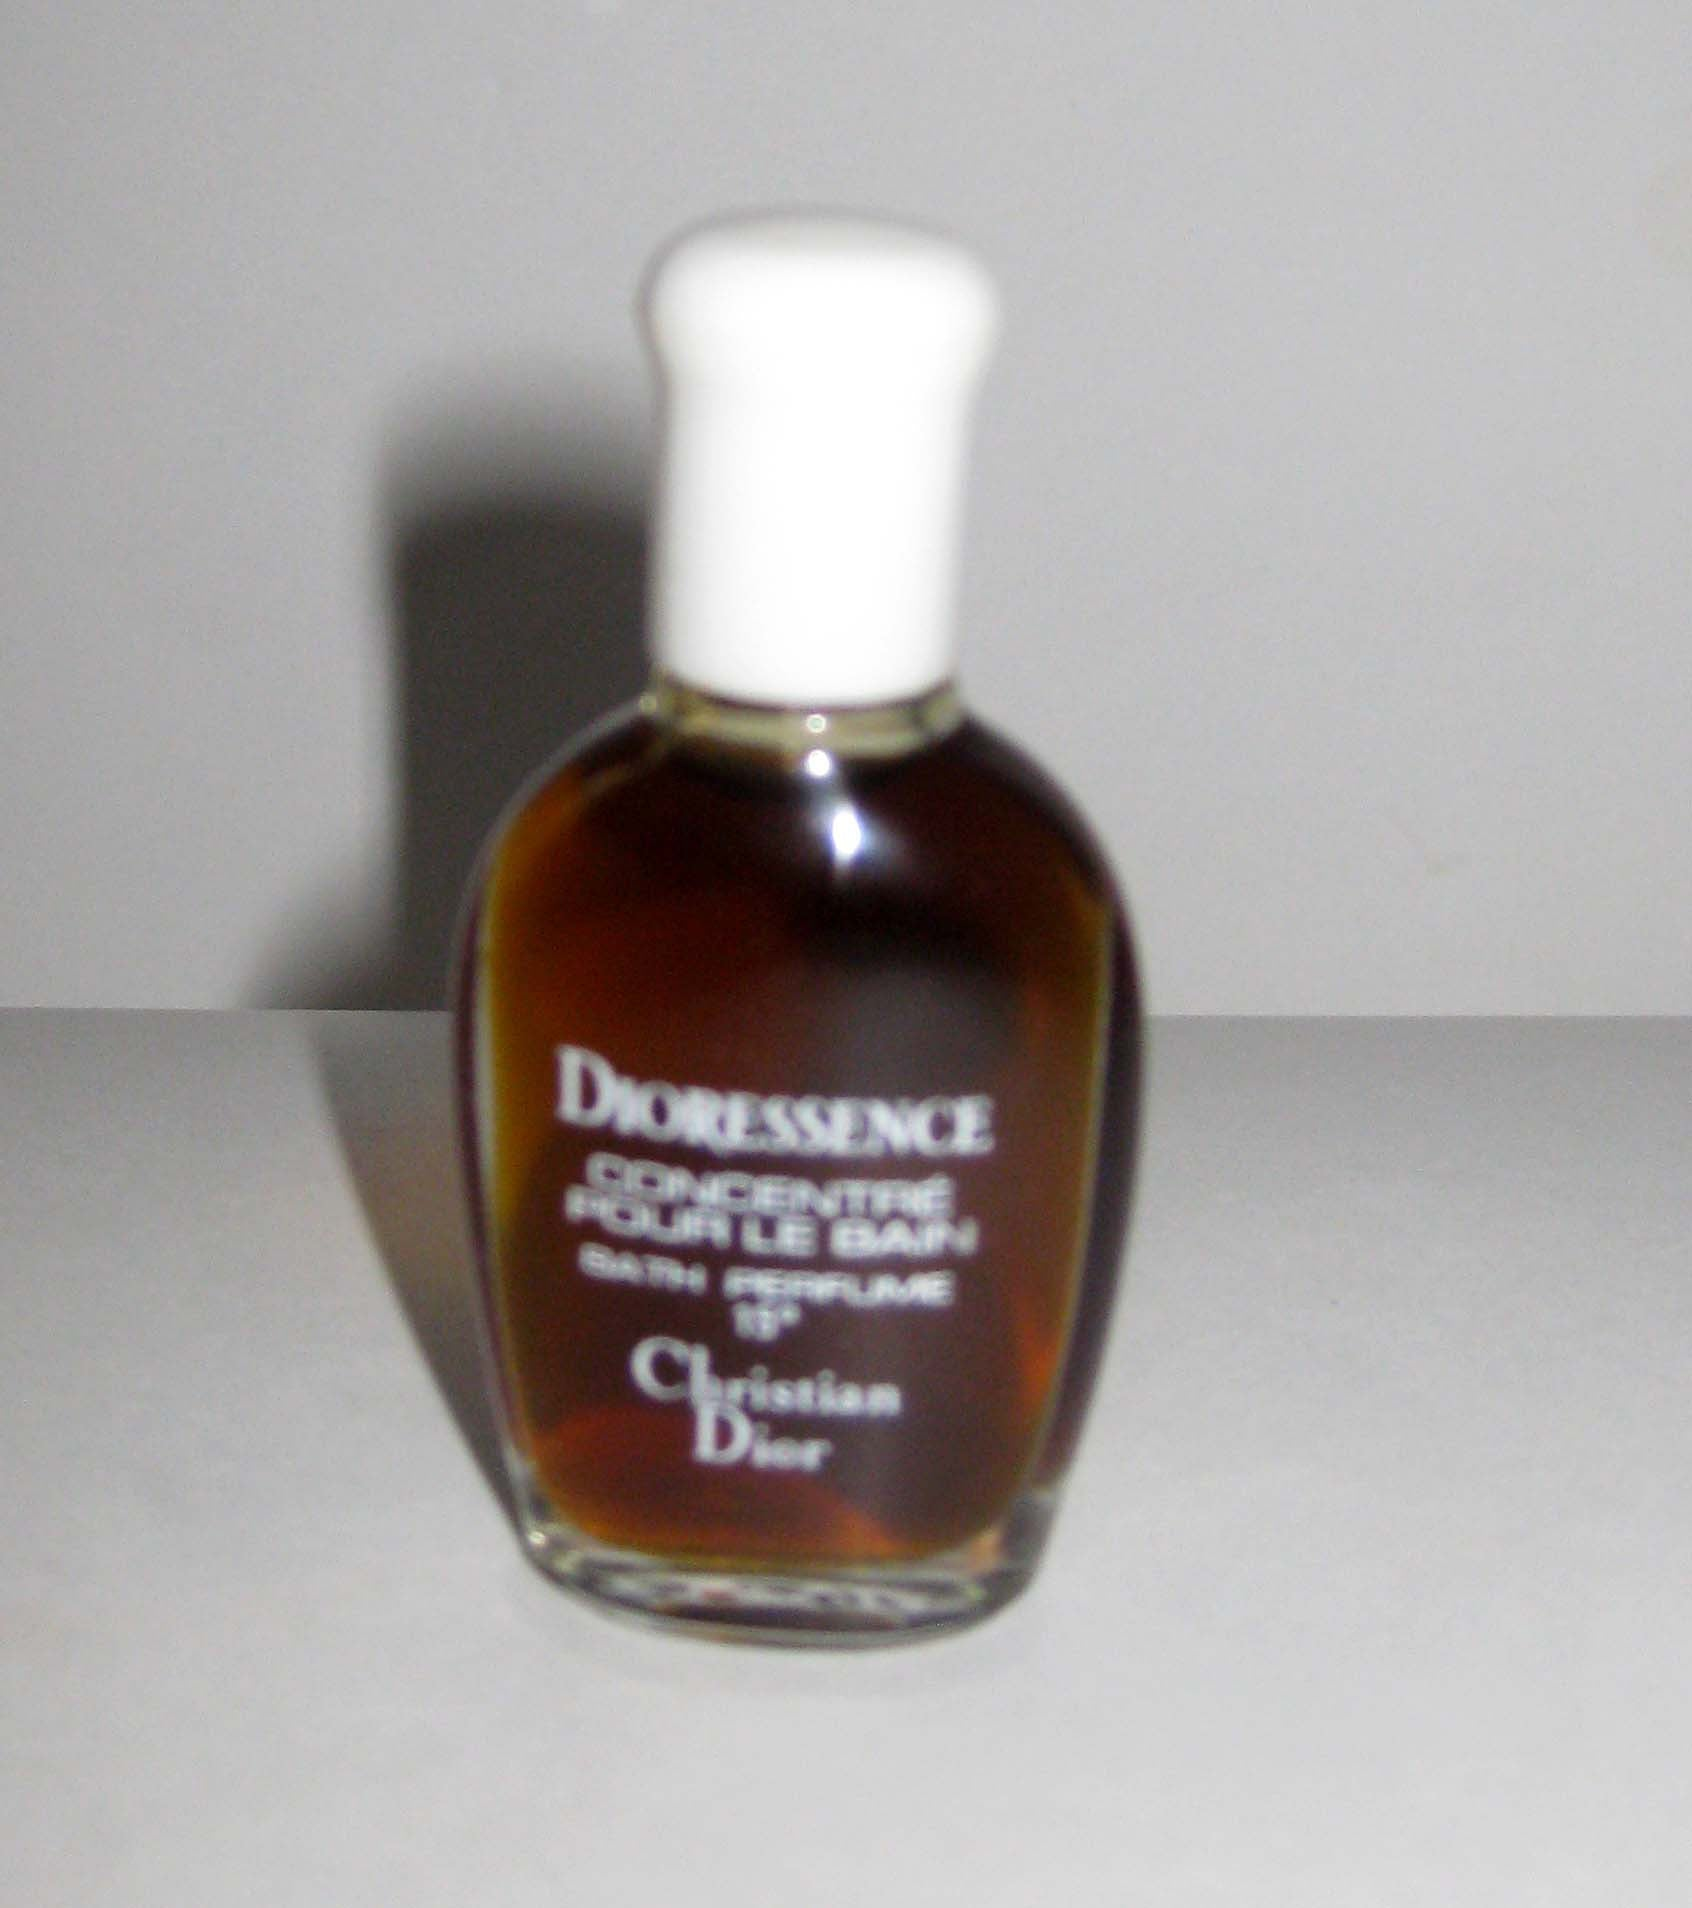 Christian Dior Dioressence Concentre Bath Perfume Mini